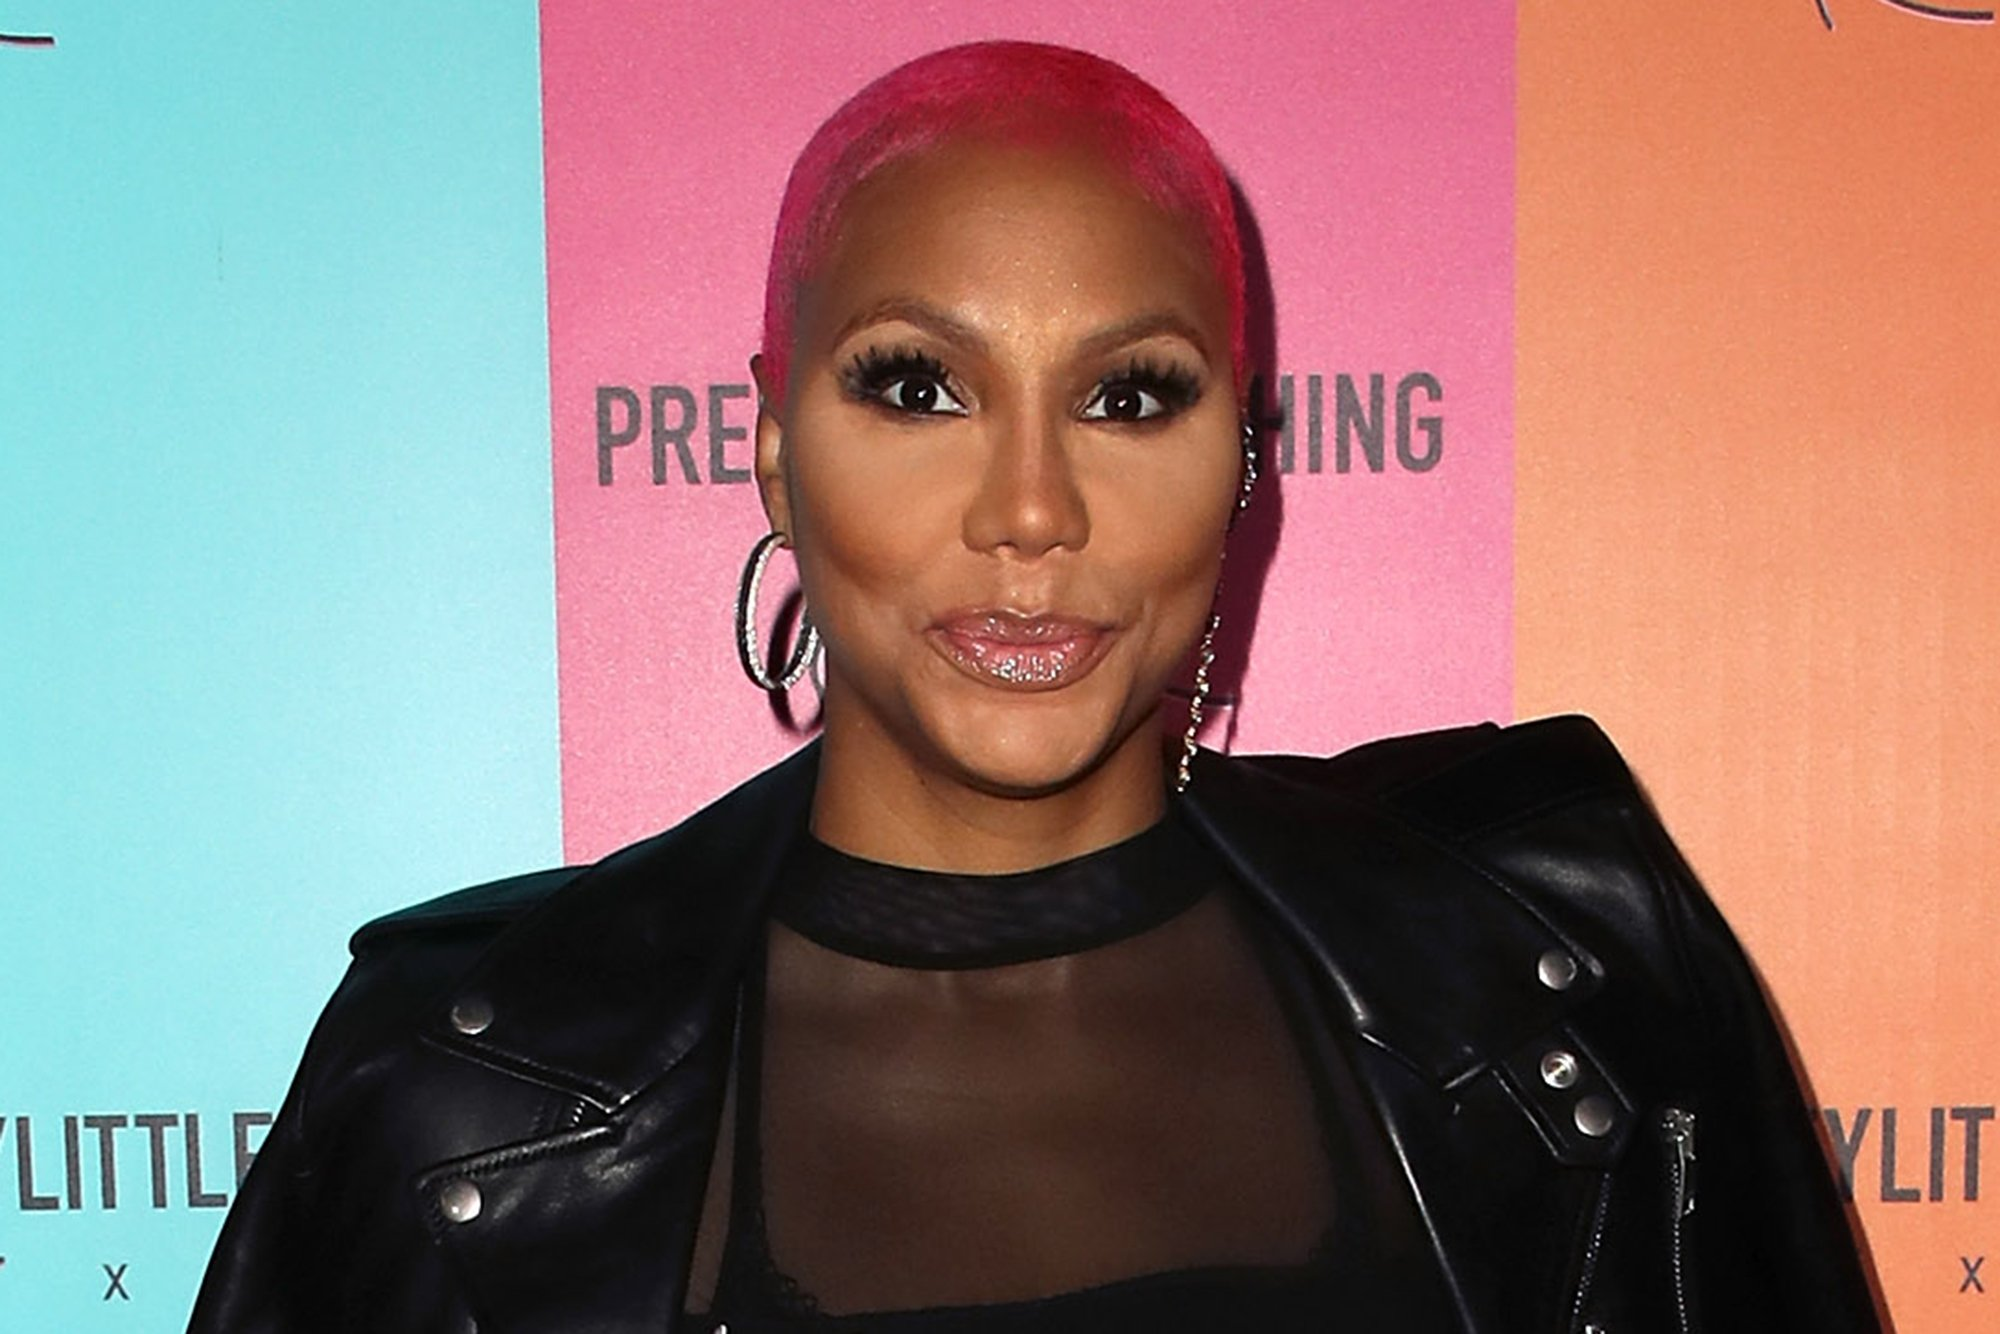 Tamar Braxton Shares An Emotional Post About The Times We Live In